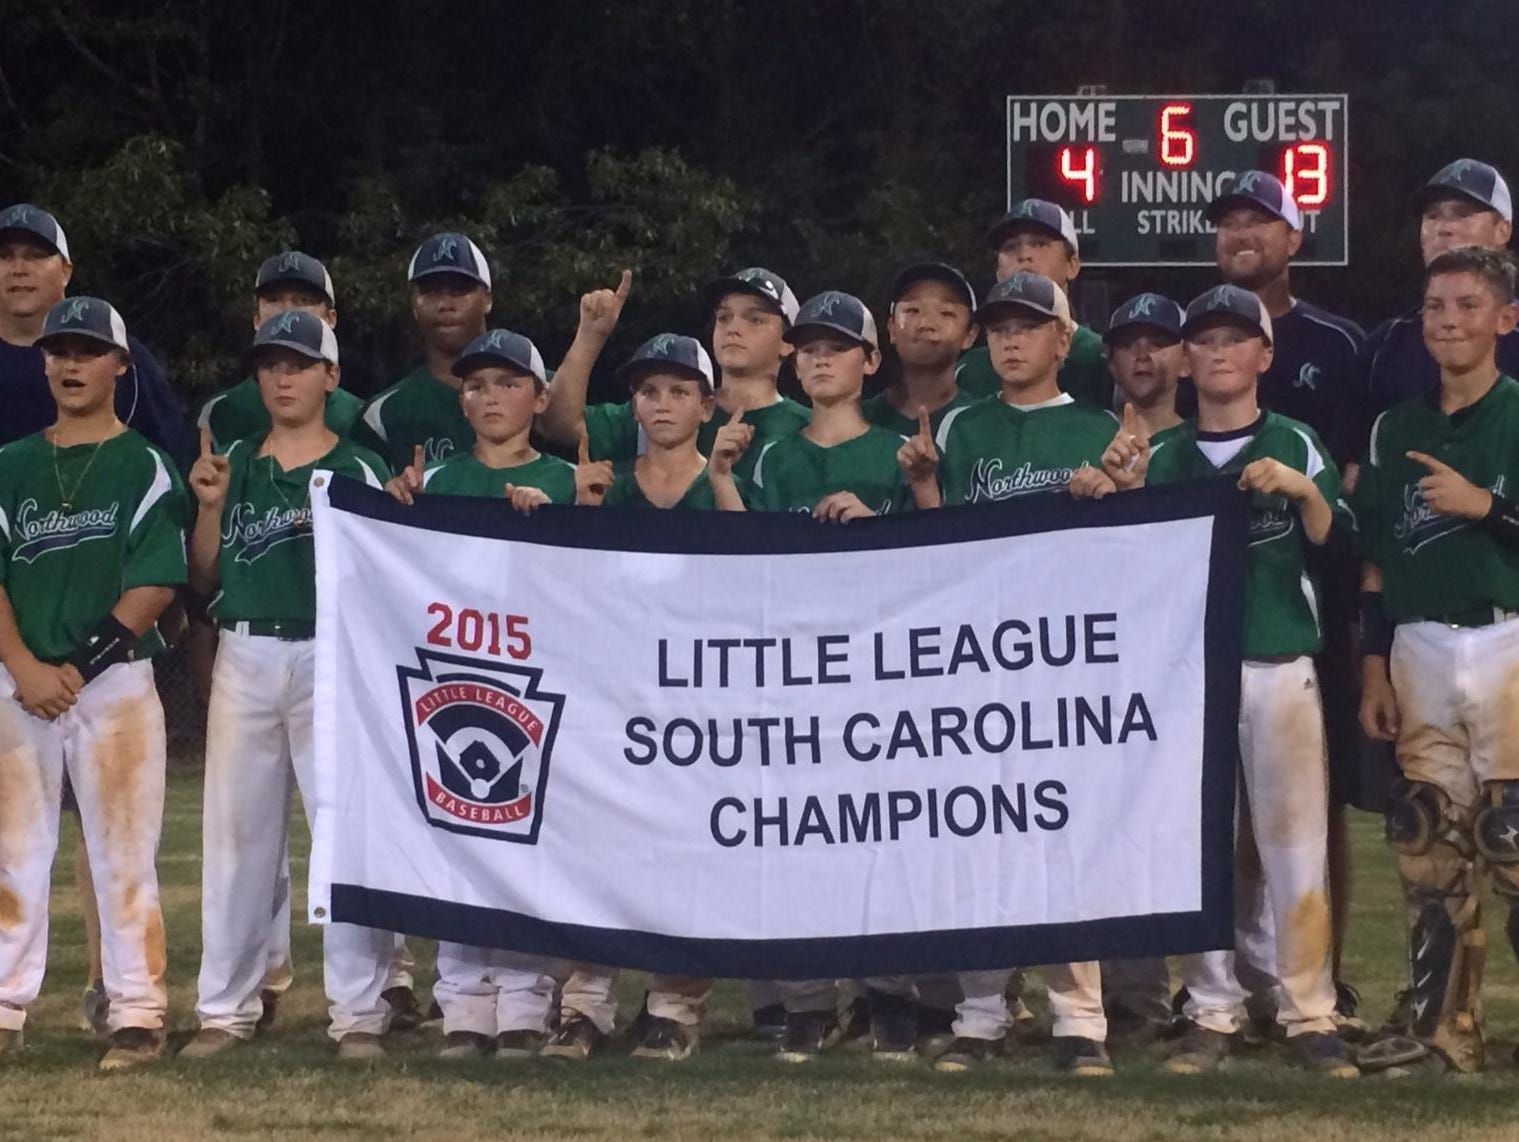 Northwood Little League, the South Carolina state champion, has won its first two games in the Little League Baseball Southeast Regional in Warner Robins, Georgia.